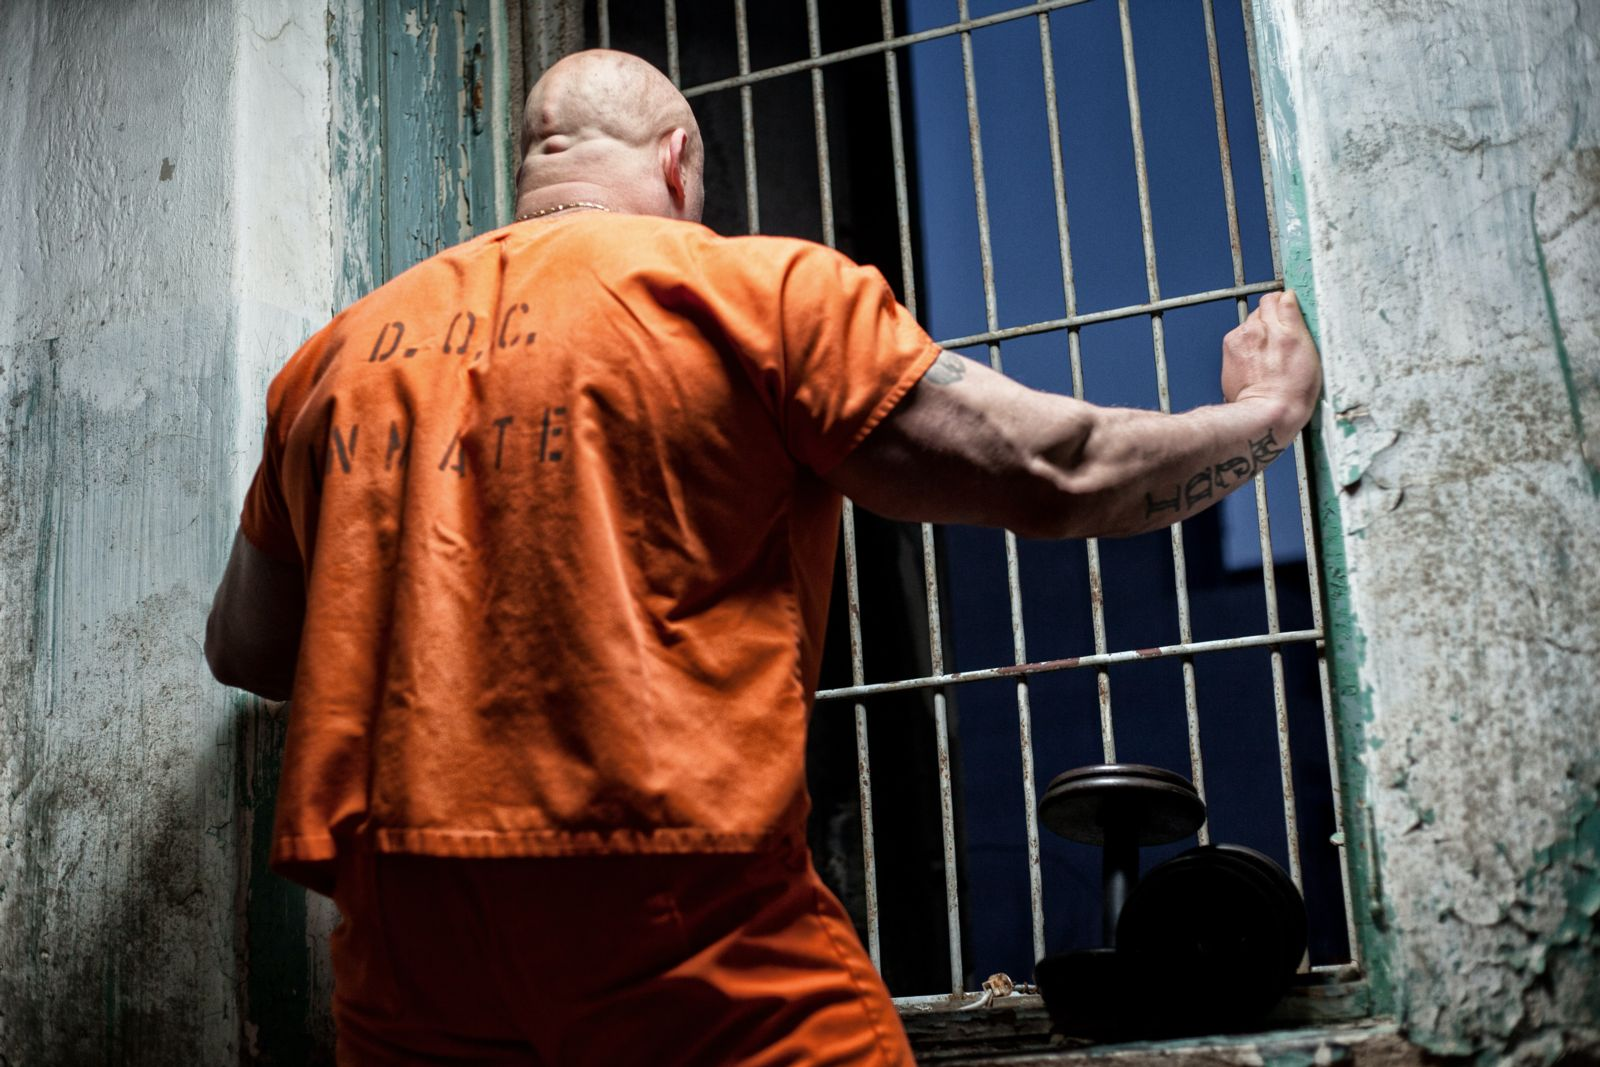 Florida Prison inmates are dying from Covid -19 at the highest rate in the country - a man in a prison uniform is in a prison cell in this image